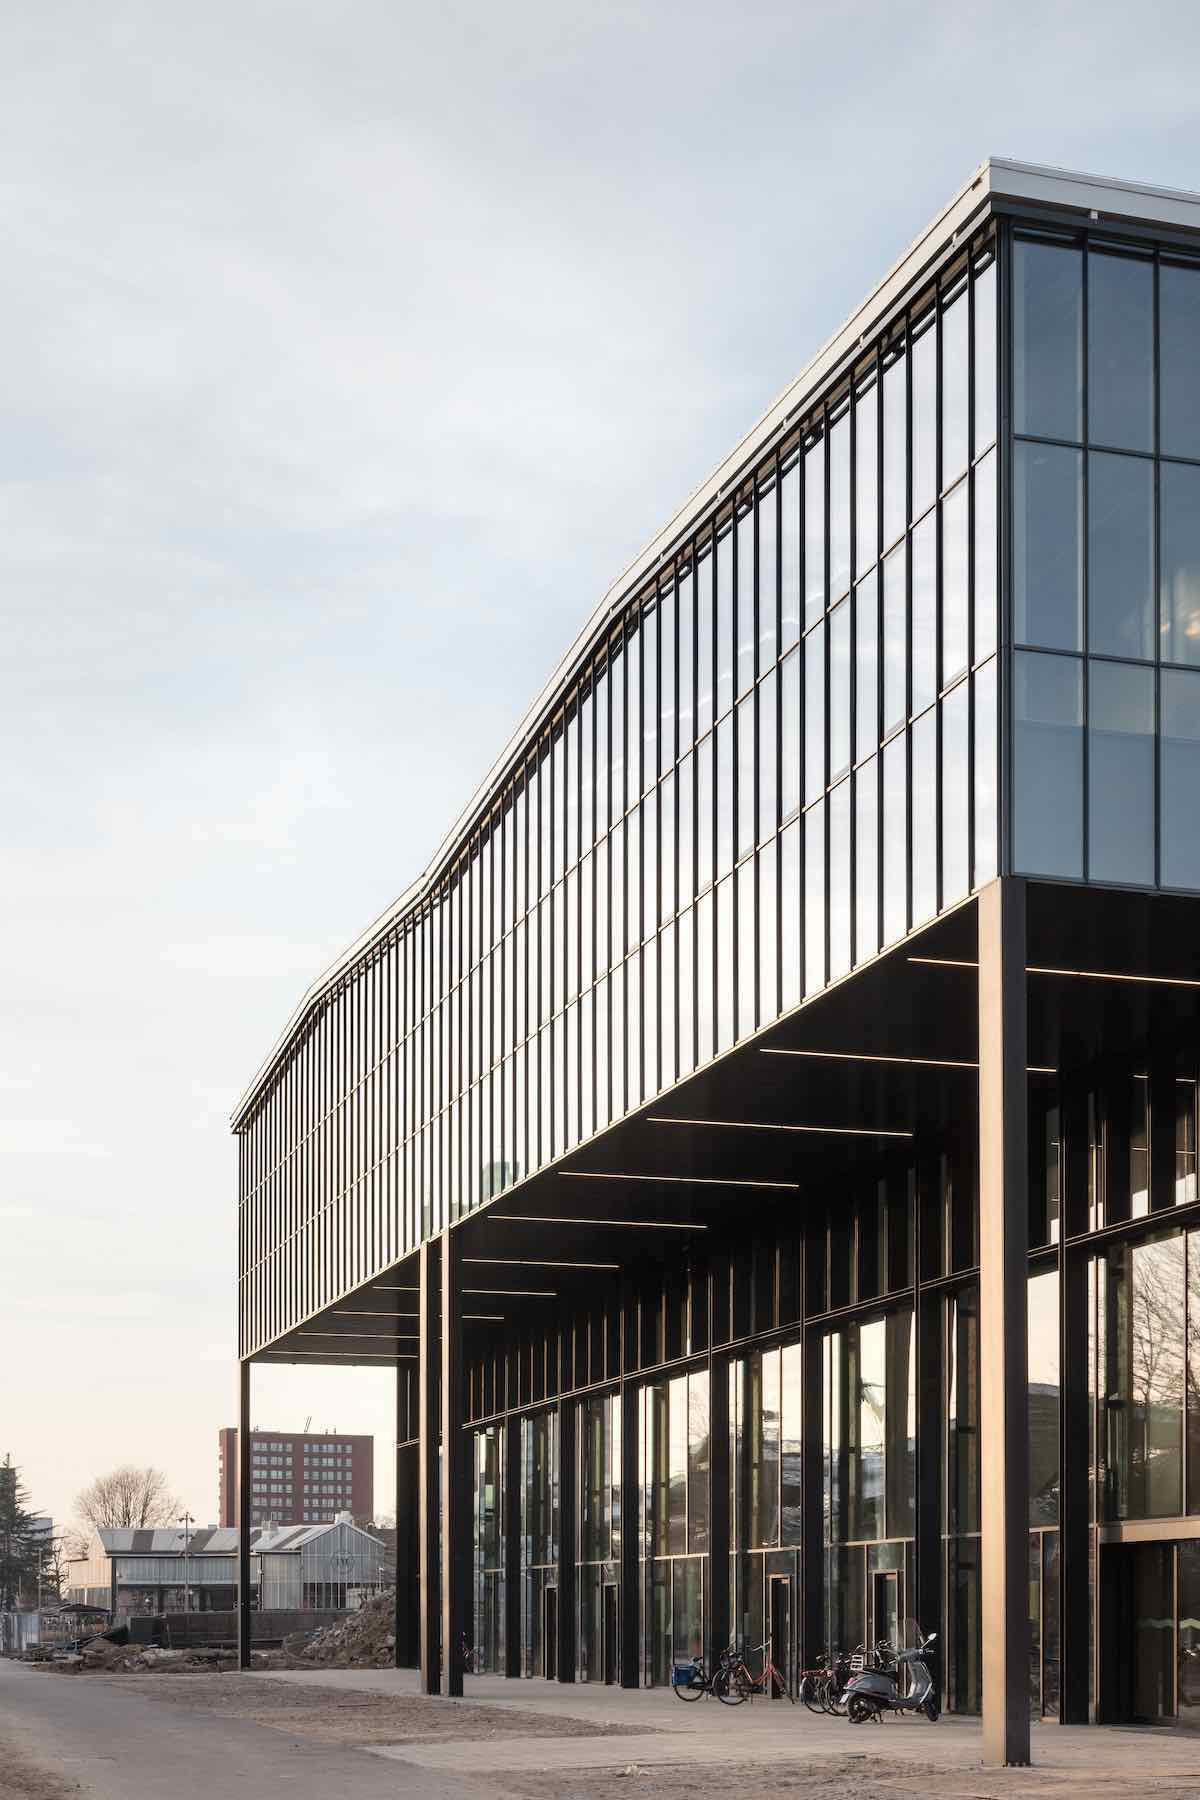 LocHal Public Library by Civic Architects - Photo by Stijn Bollaert, courtesy of World Architecture Festival.